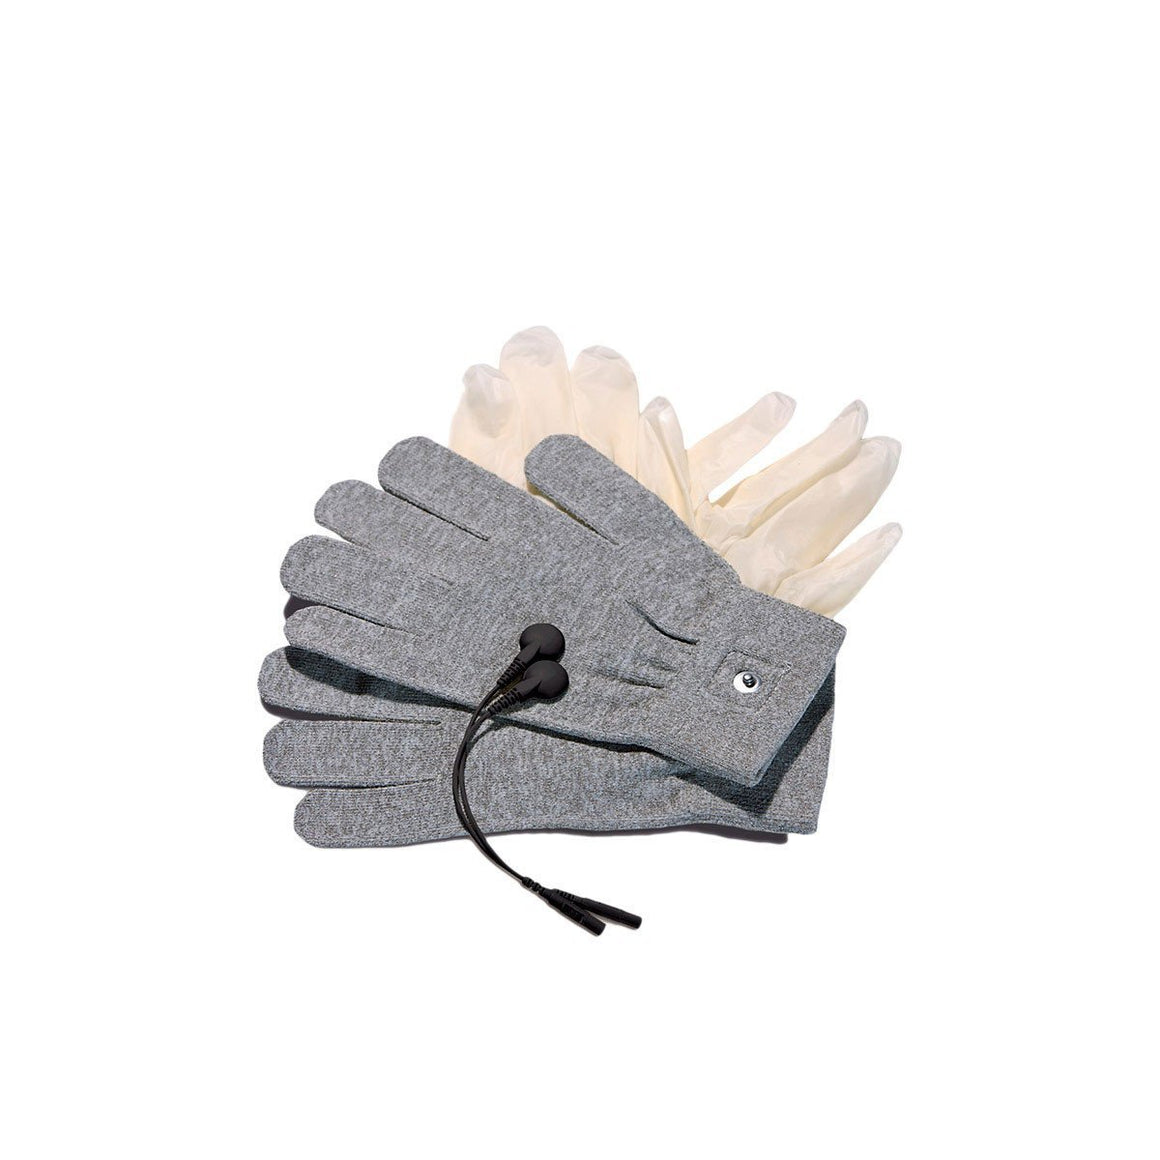 Magic Gloves - Couples Playthings